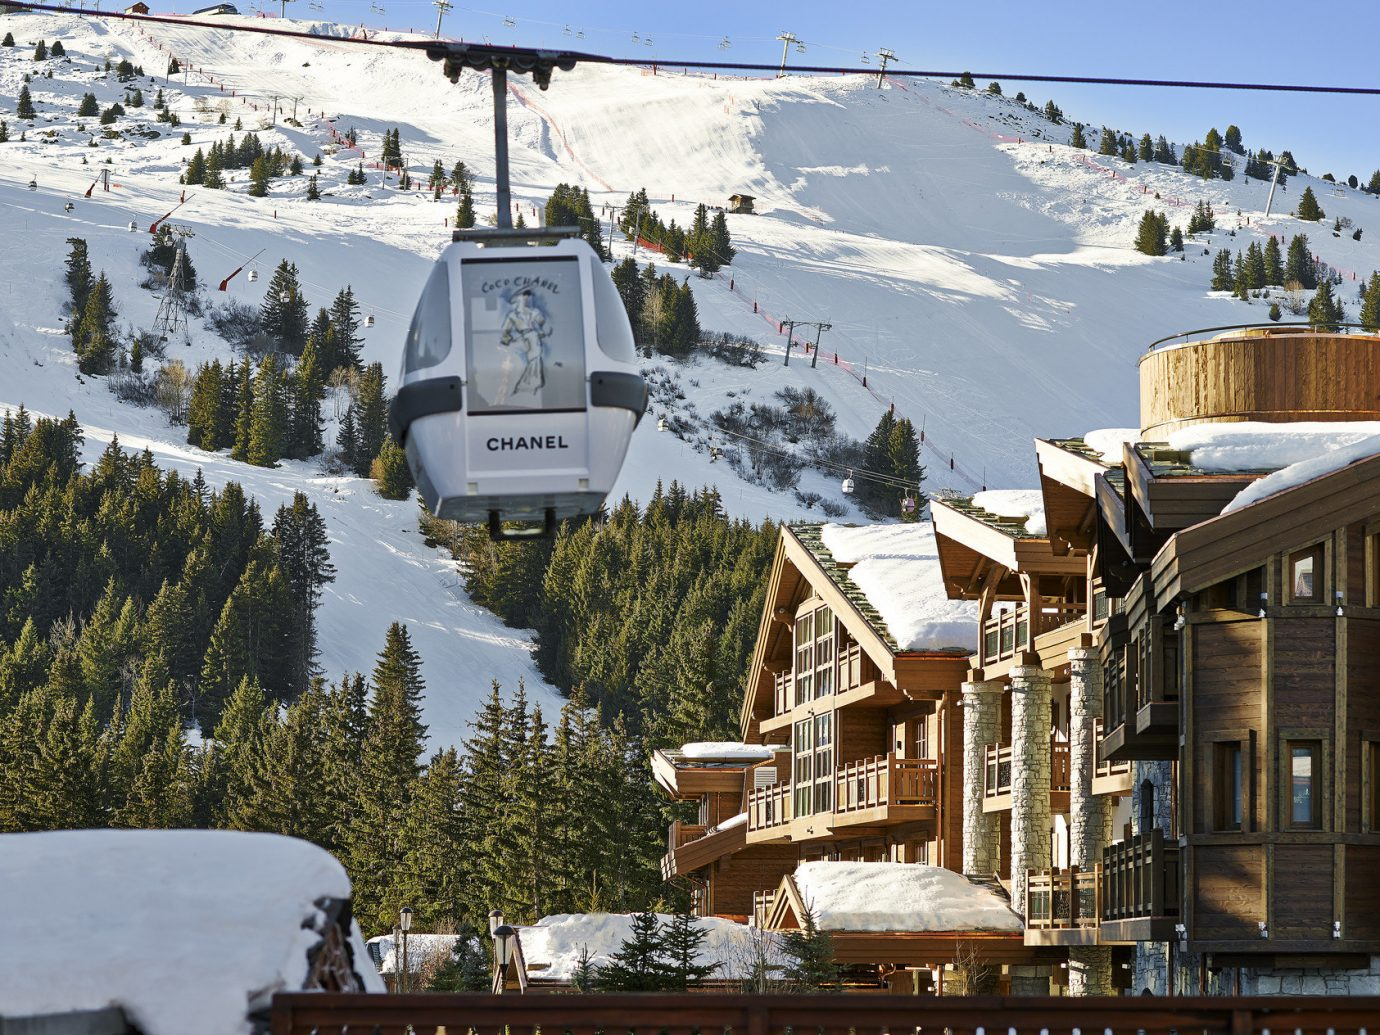 building Cabin Exterior Greenery Hotels Lodge Luxury Travel remote Rustic ski lift ski lodge snow trees Winter outdoor tree sky transport Town weather season Resort residential area rolling stock mountain mountain range vehicle